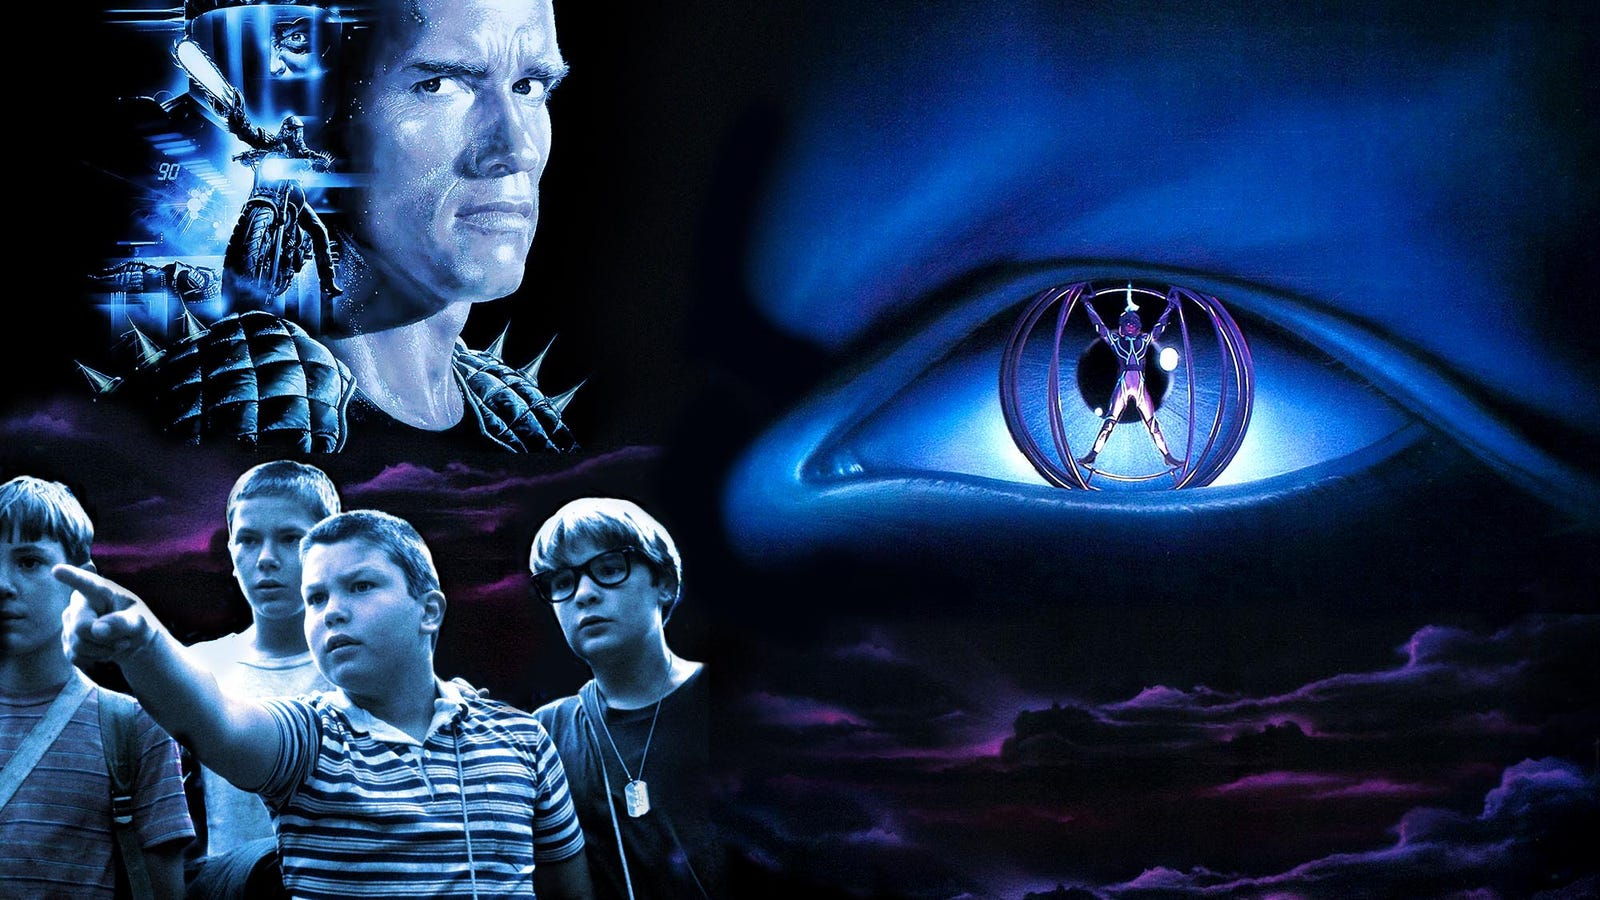 Stand by these: The best and weirdest Stephen King films, miniseries, and TV shows